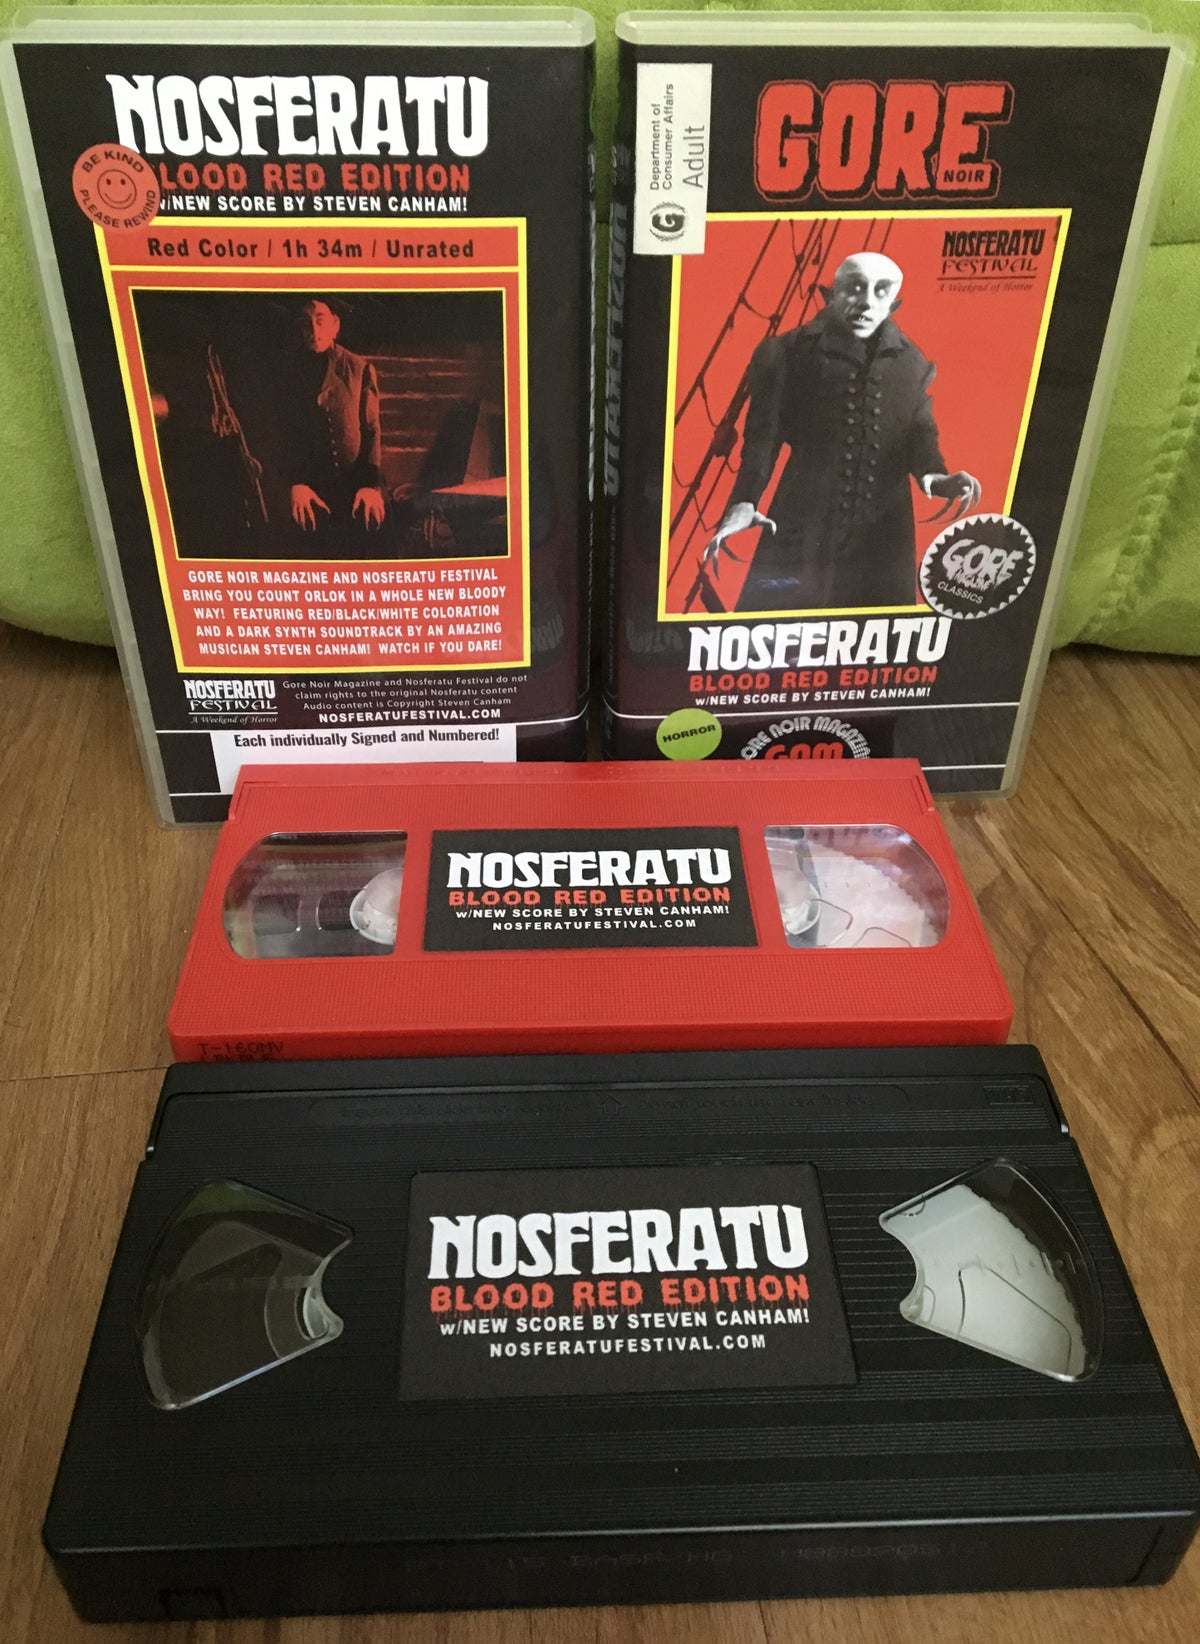 Image of Nosferatu Blood Red Edition VHS Movie W/New Soundtrack By Steven Canham LIMITED EDITION